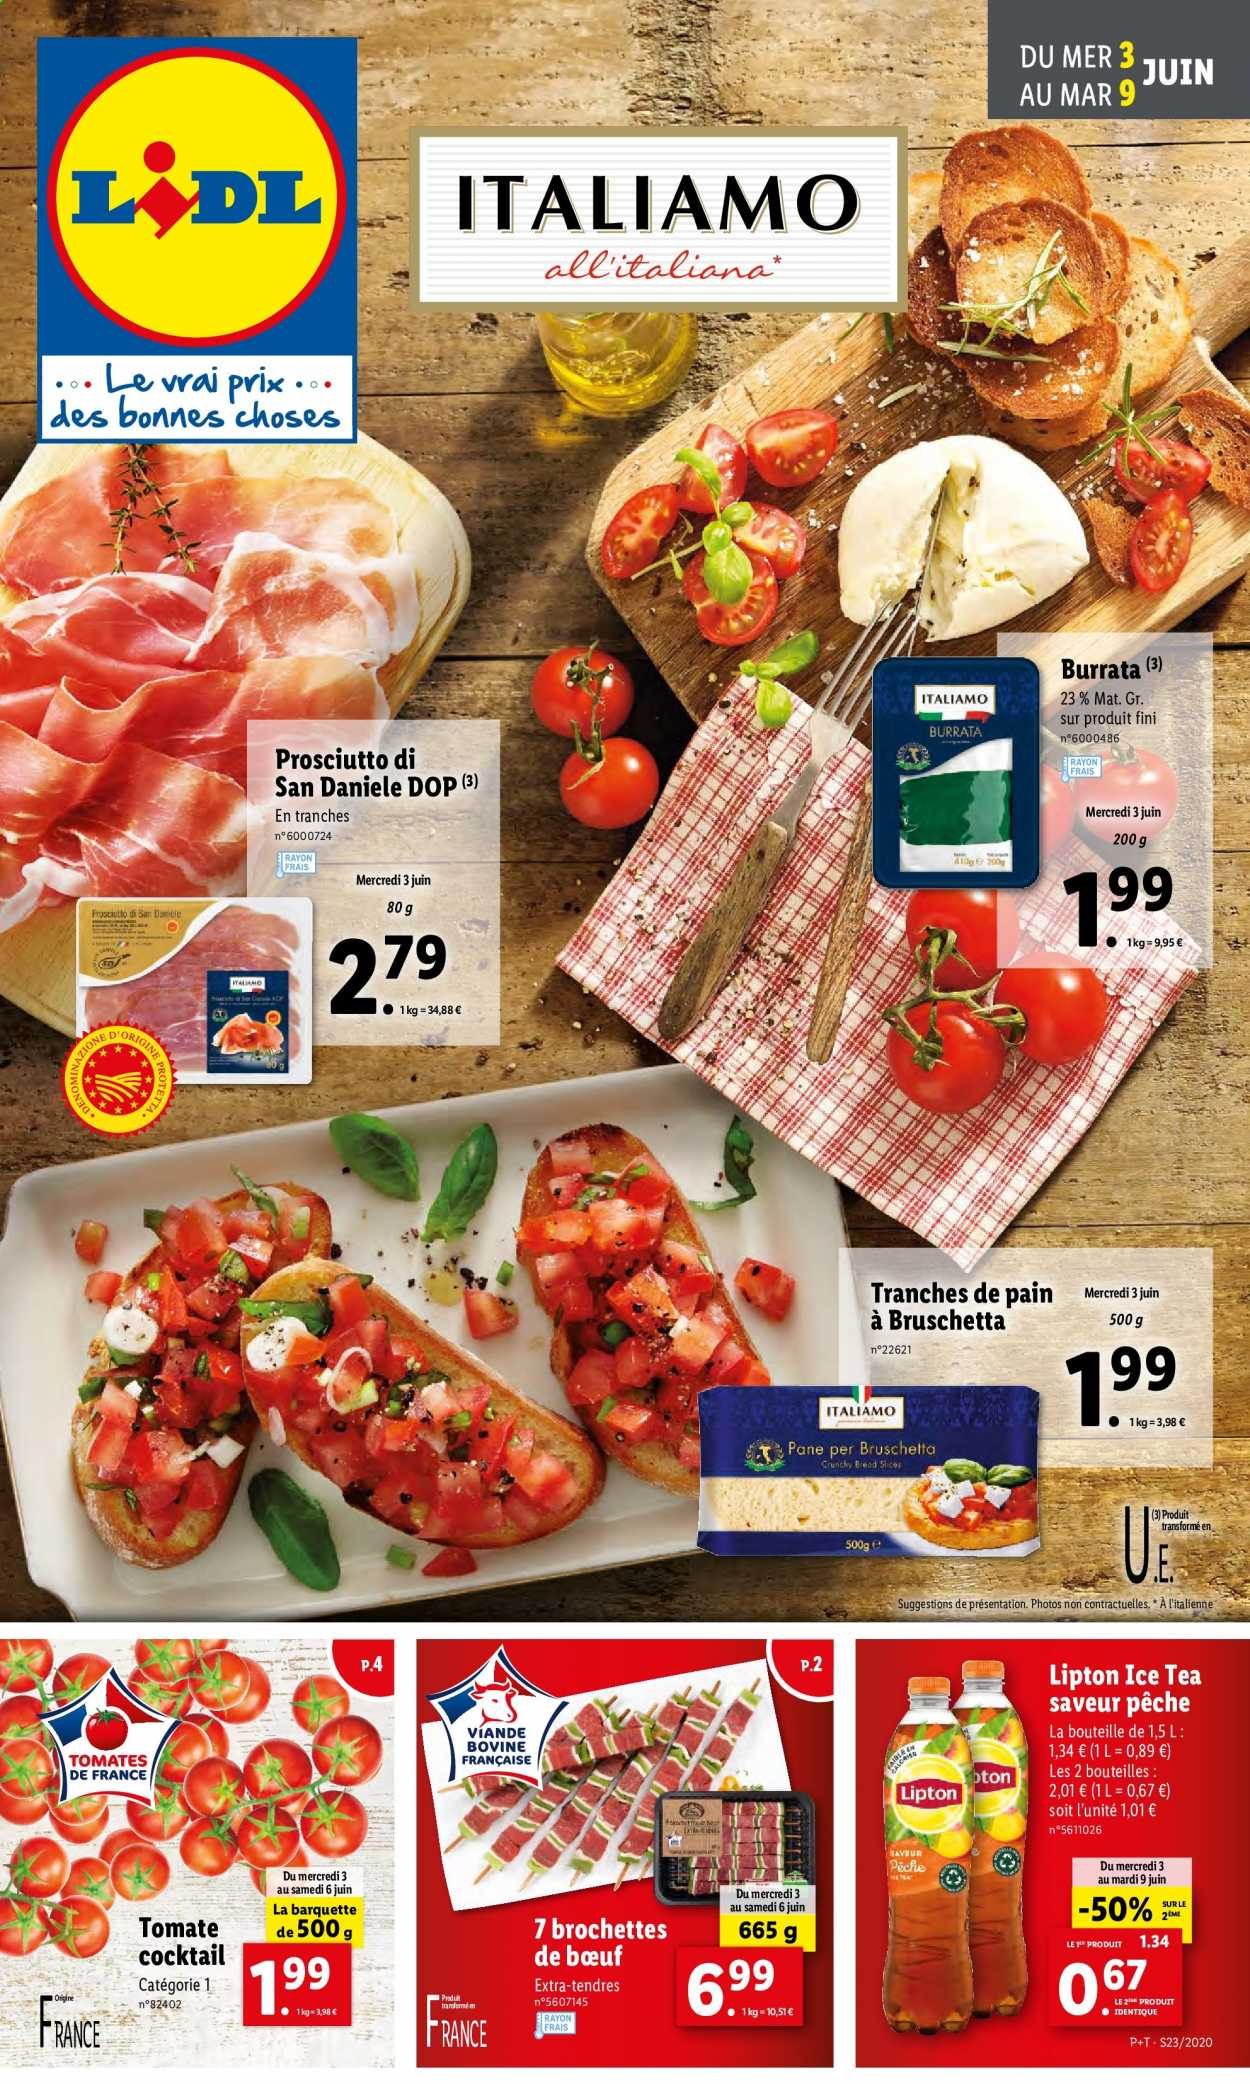 Catalogue Lidl - 03.06.2020 - 09.06.2020. Page 1.